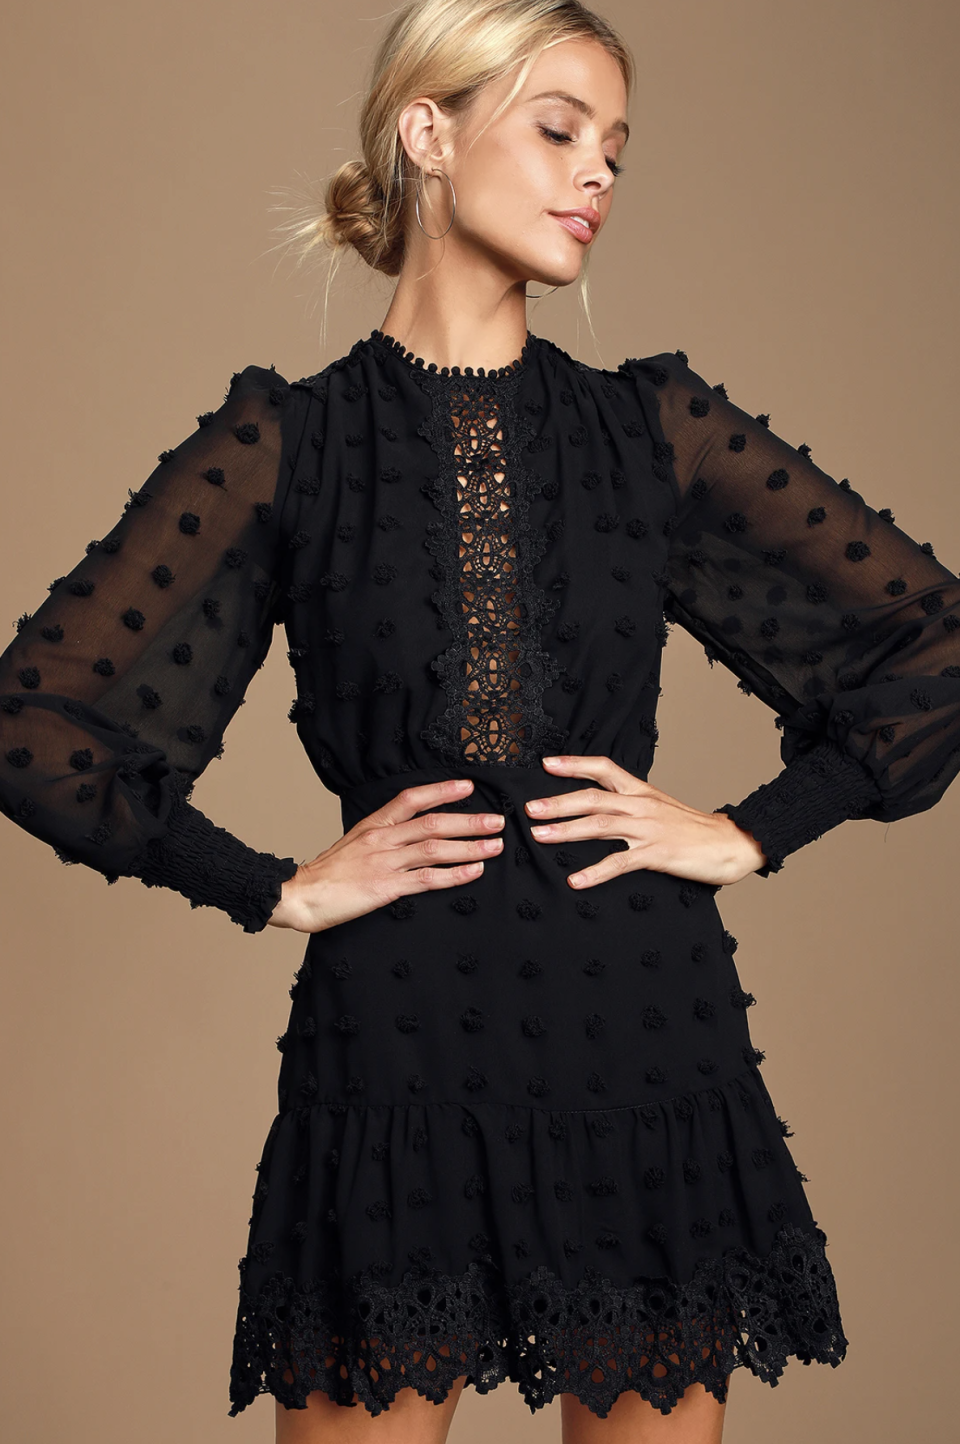 Fall wedding guest dresses: Lulus Lust or Love Embroidered Lace Long Sleeve Dress in Black (Photos via Lulus)